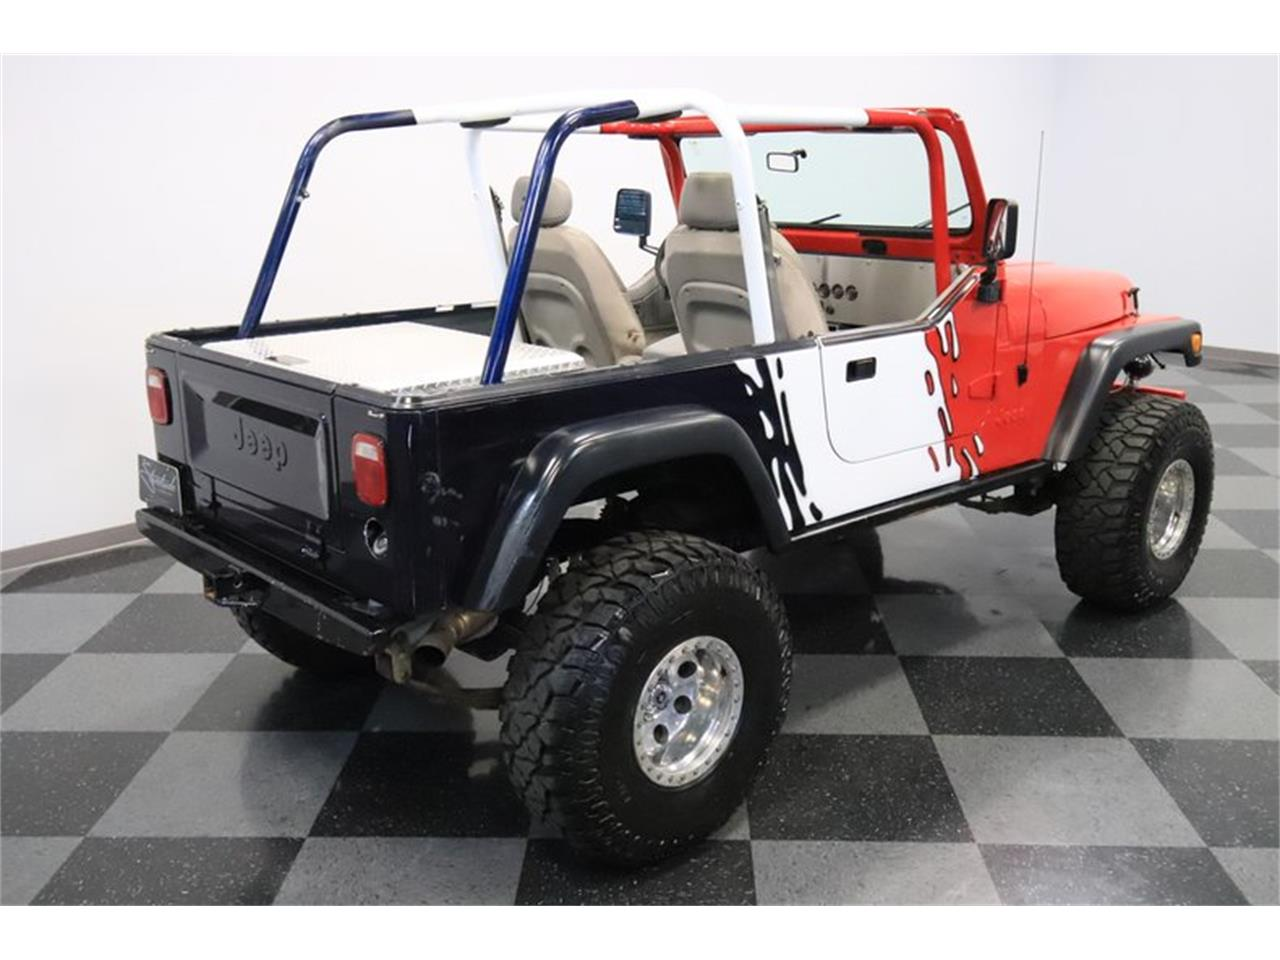 1983 Jeep CJ8 Scrambler for sale in Mesa, AZ – photo 30